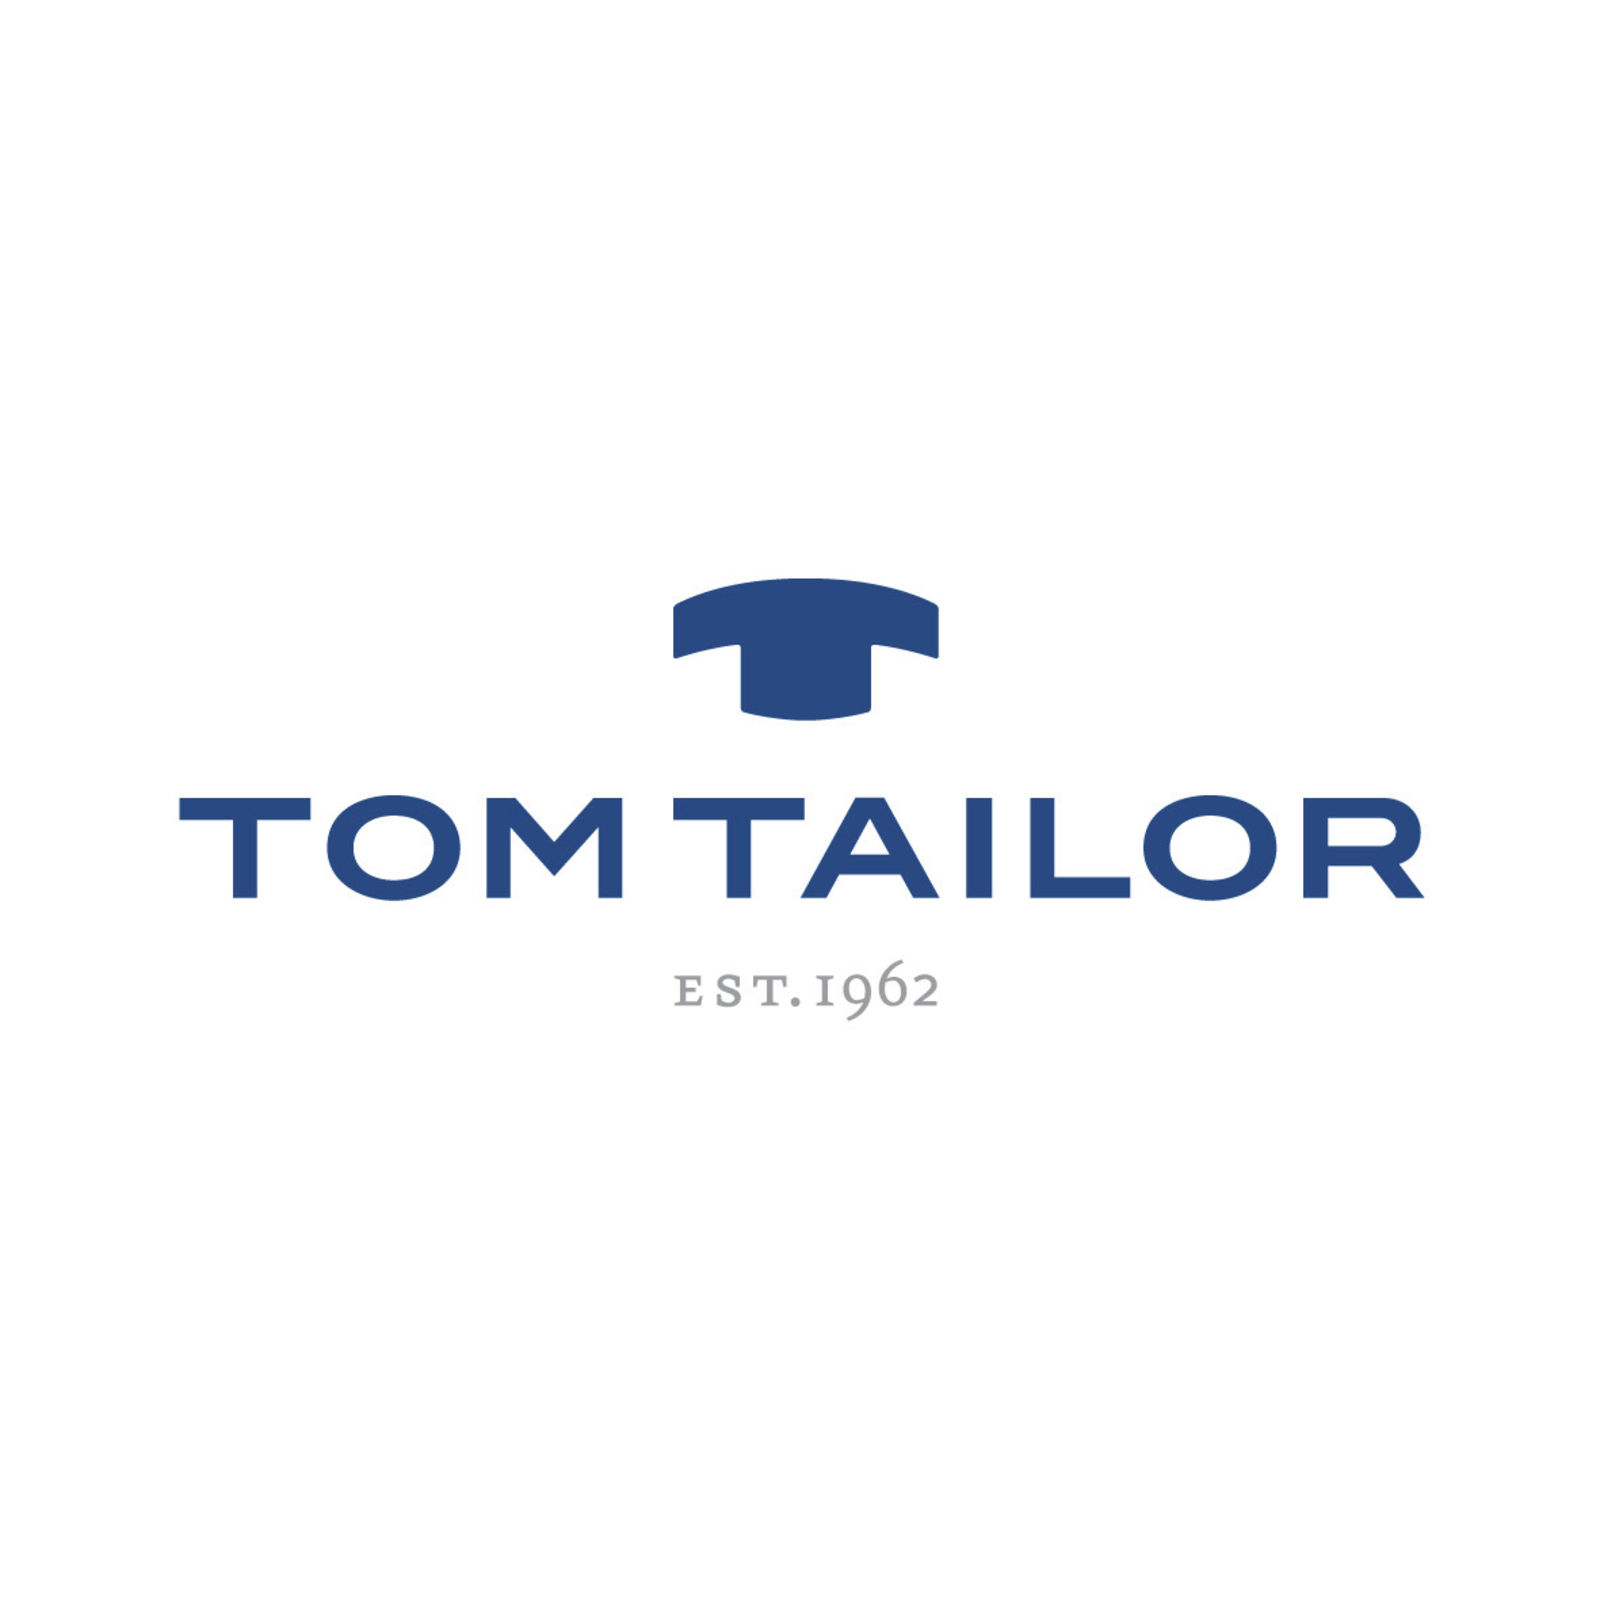 TOM TAILOR (Image 1)